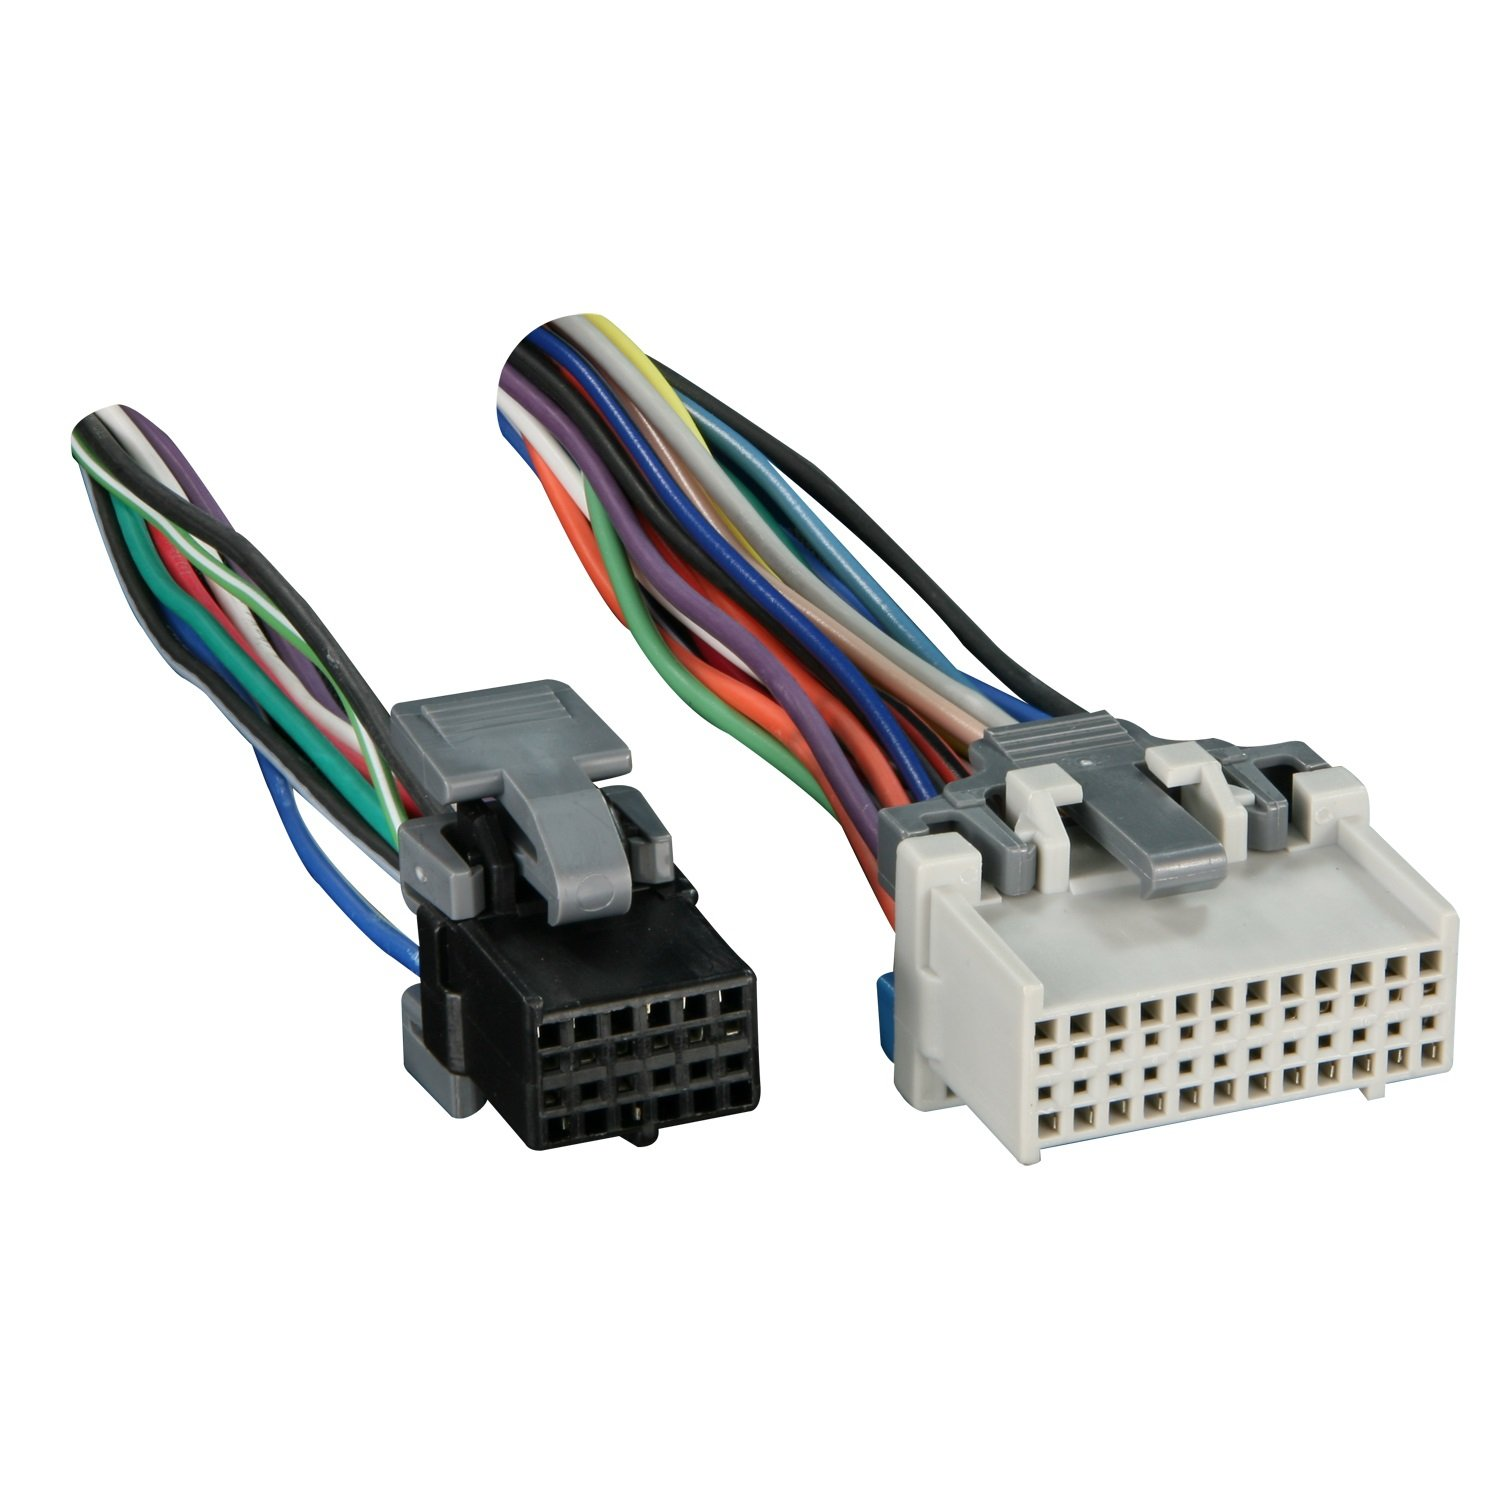 711log4bdML._SL1500_ amazon com metra turbowires 71 2003 1 wiring harness car electronics 05 colorado radio wiring harness at crackthecode.co